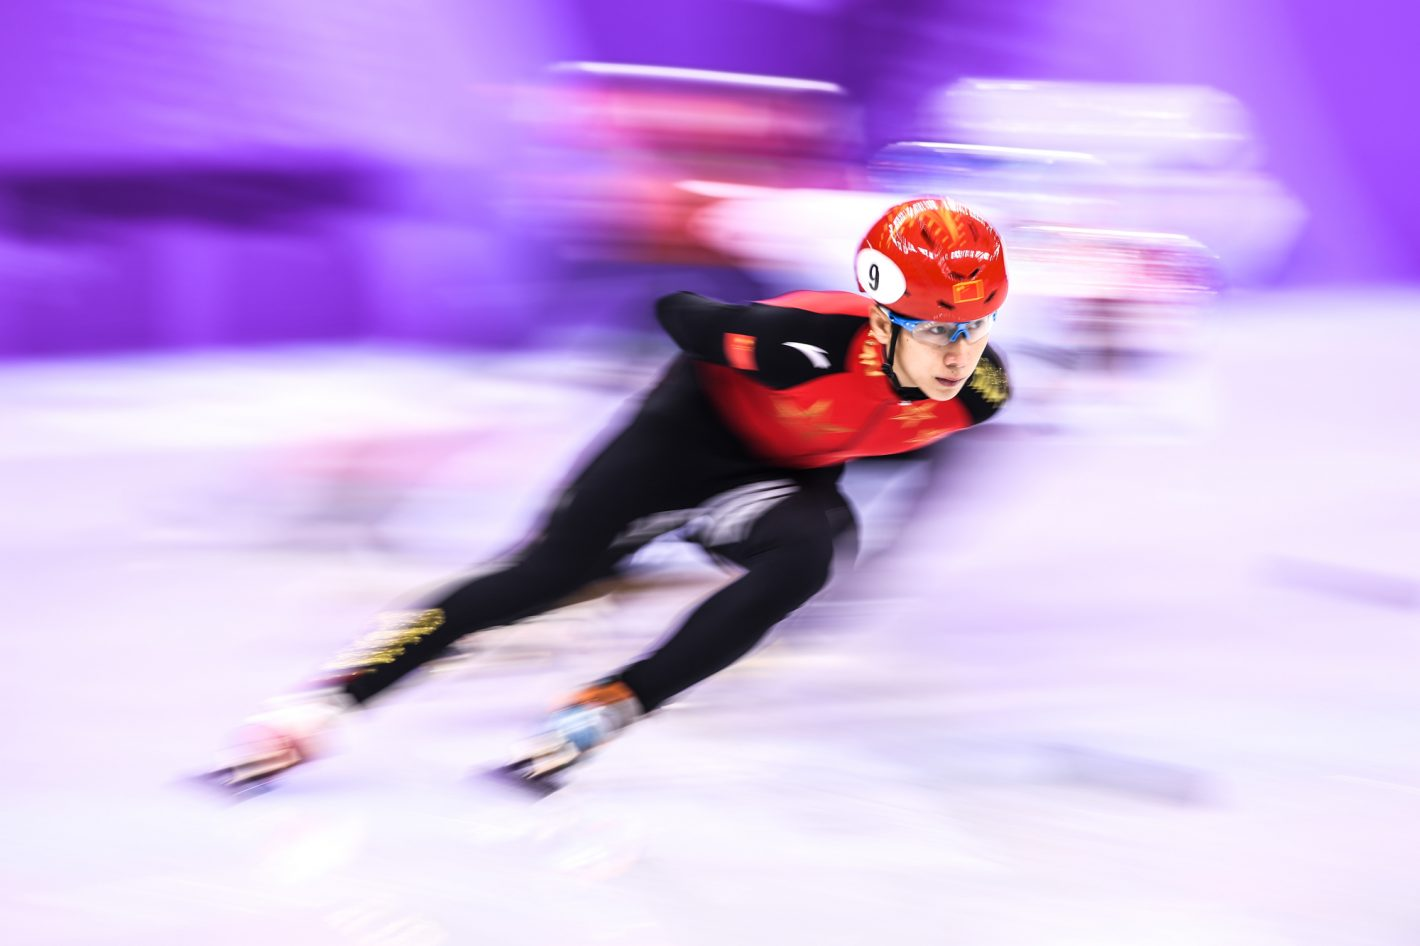 Han Tian Yu of China competes during the Men's 1,500 Final Group B on February 10, 2018. Nikon D5 | AF-S NIKKOR 300mm f/2.8G ED VR II | ISO 64 | 1/13 s | f/5 Copyright: An Ling Jung / China Sports